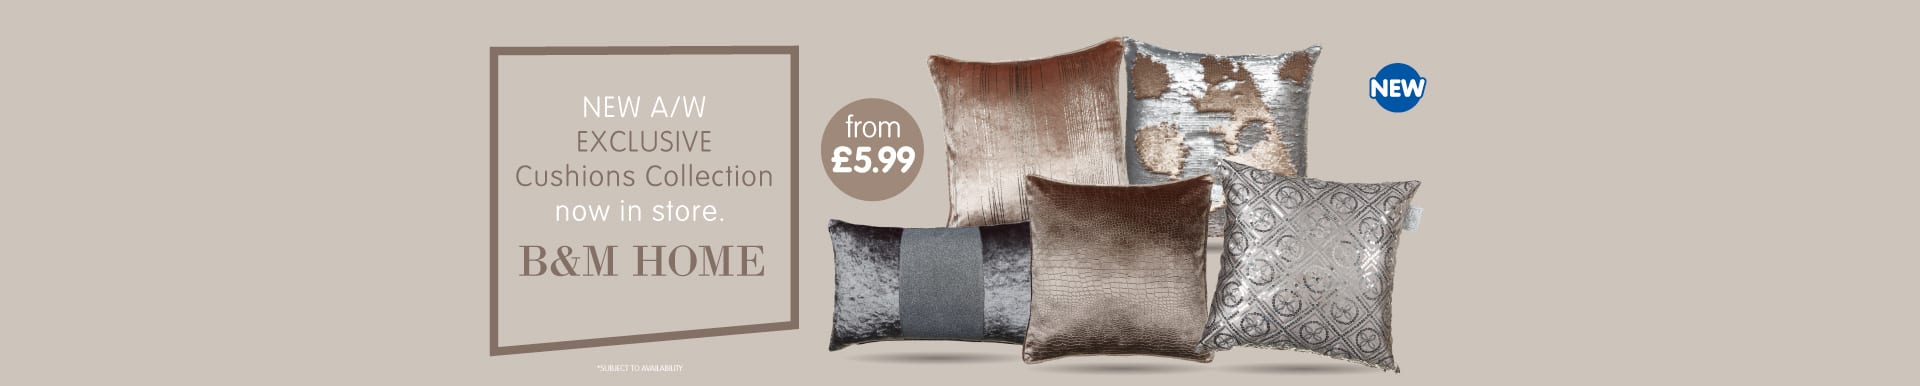 New A/W Cushions range now in store at B&M.